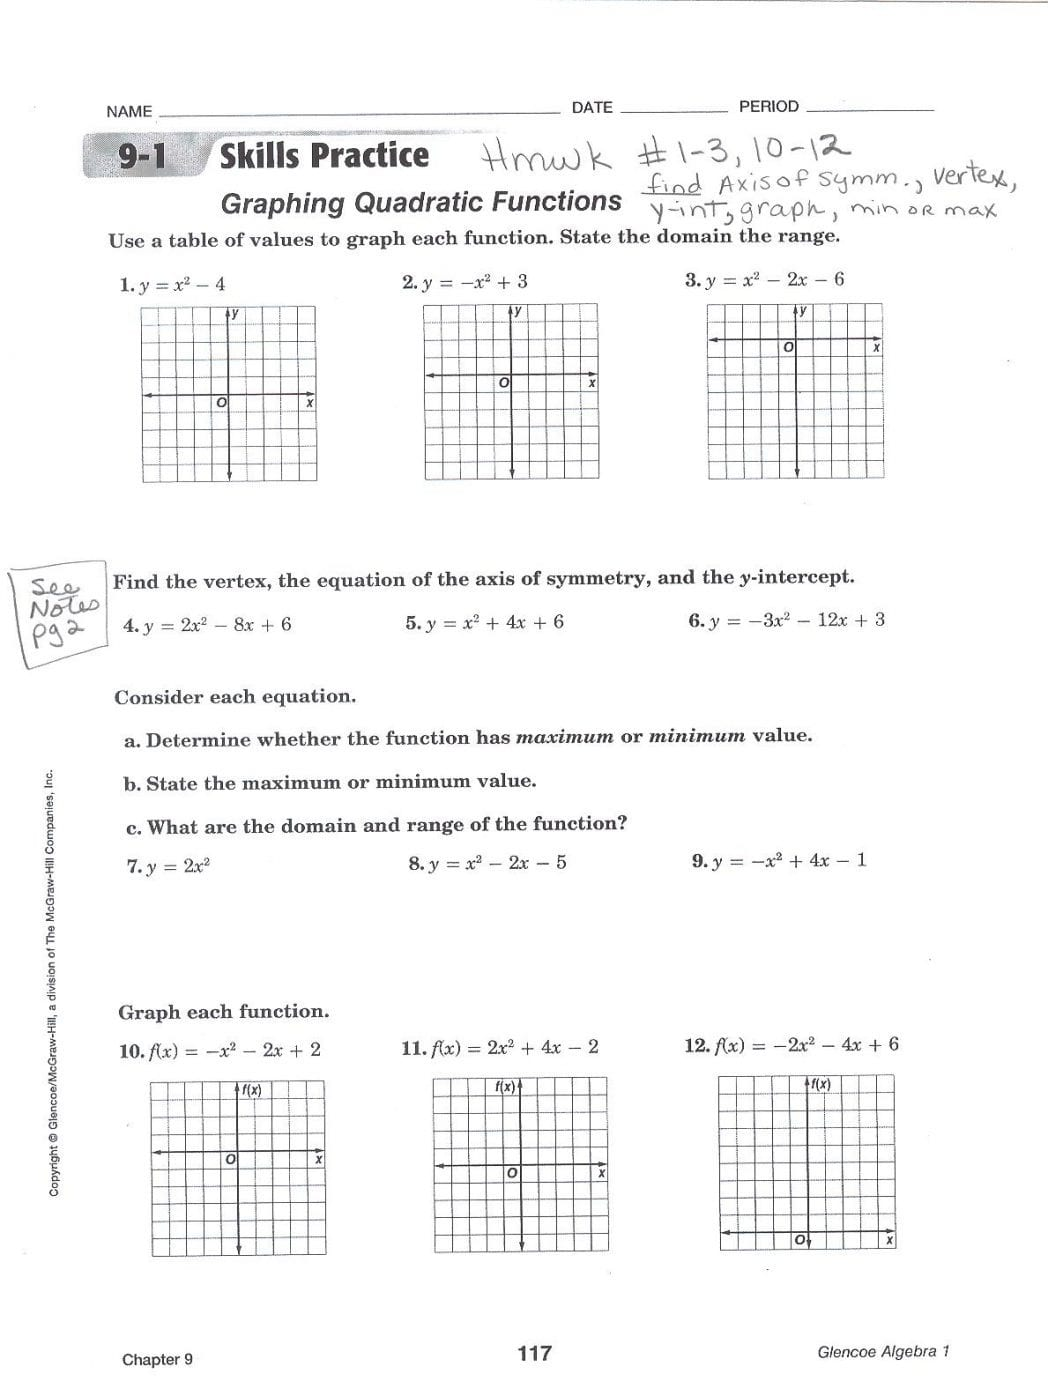 Graphing Quadratic Functions In Vertex Form Worksheet